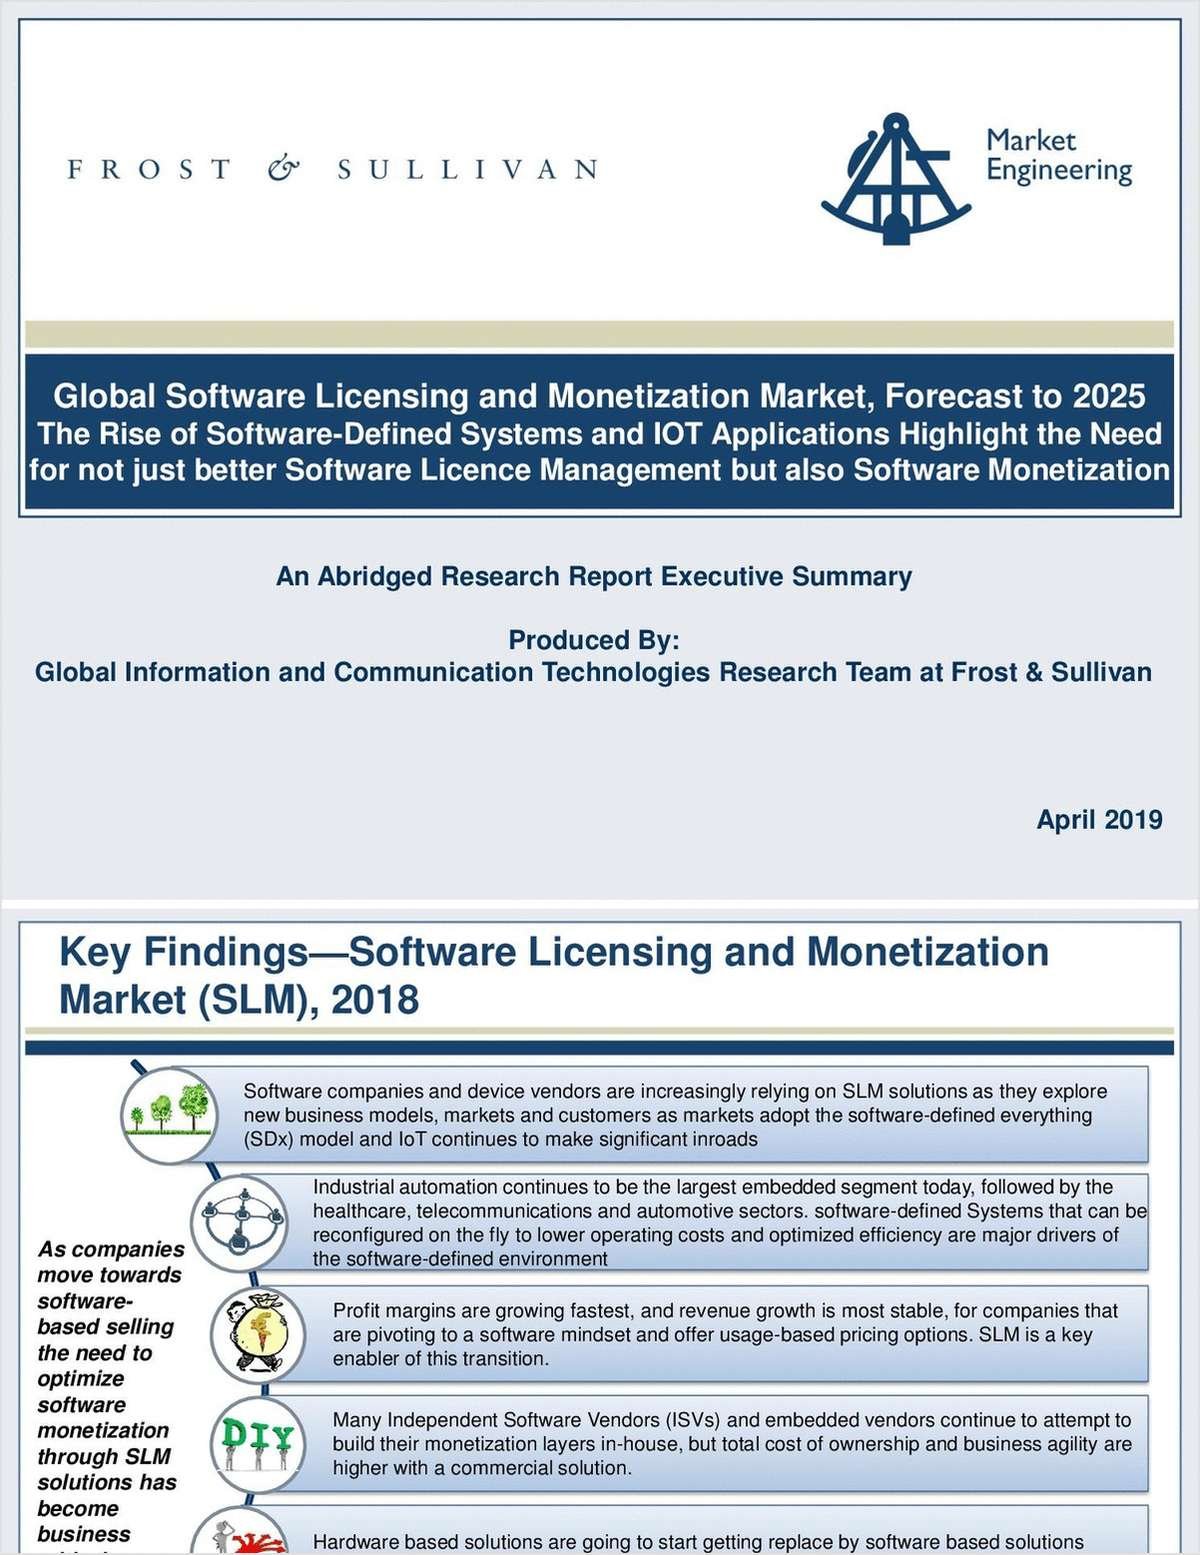 Global Software Licensing and Monetization Market, Forecast to 2025